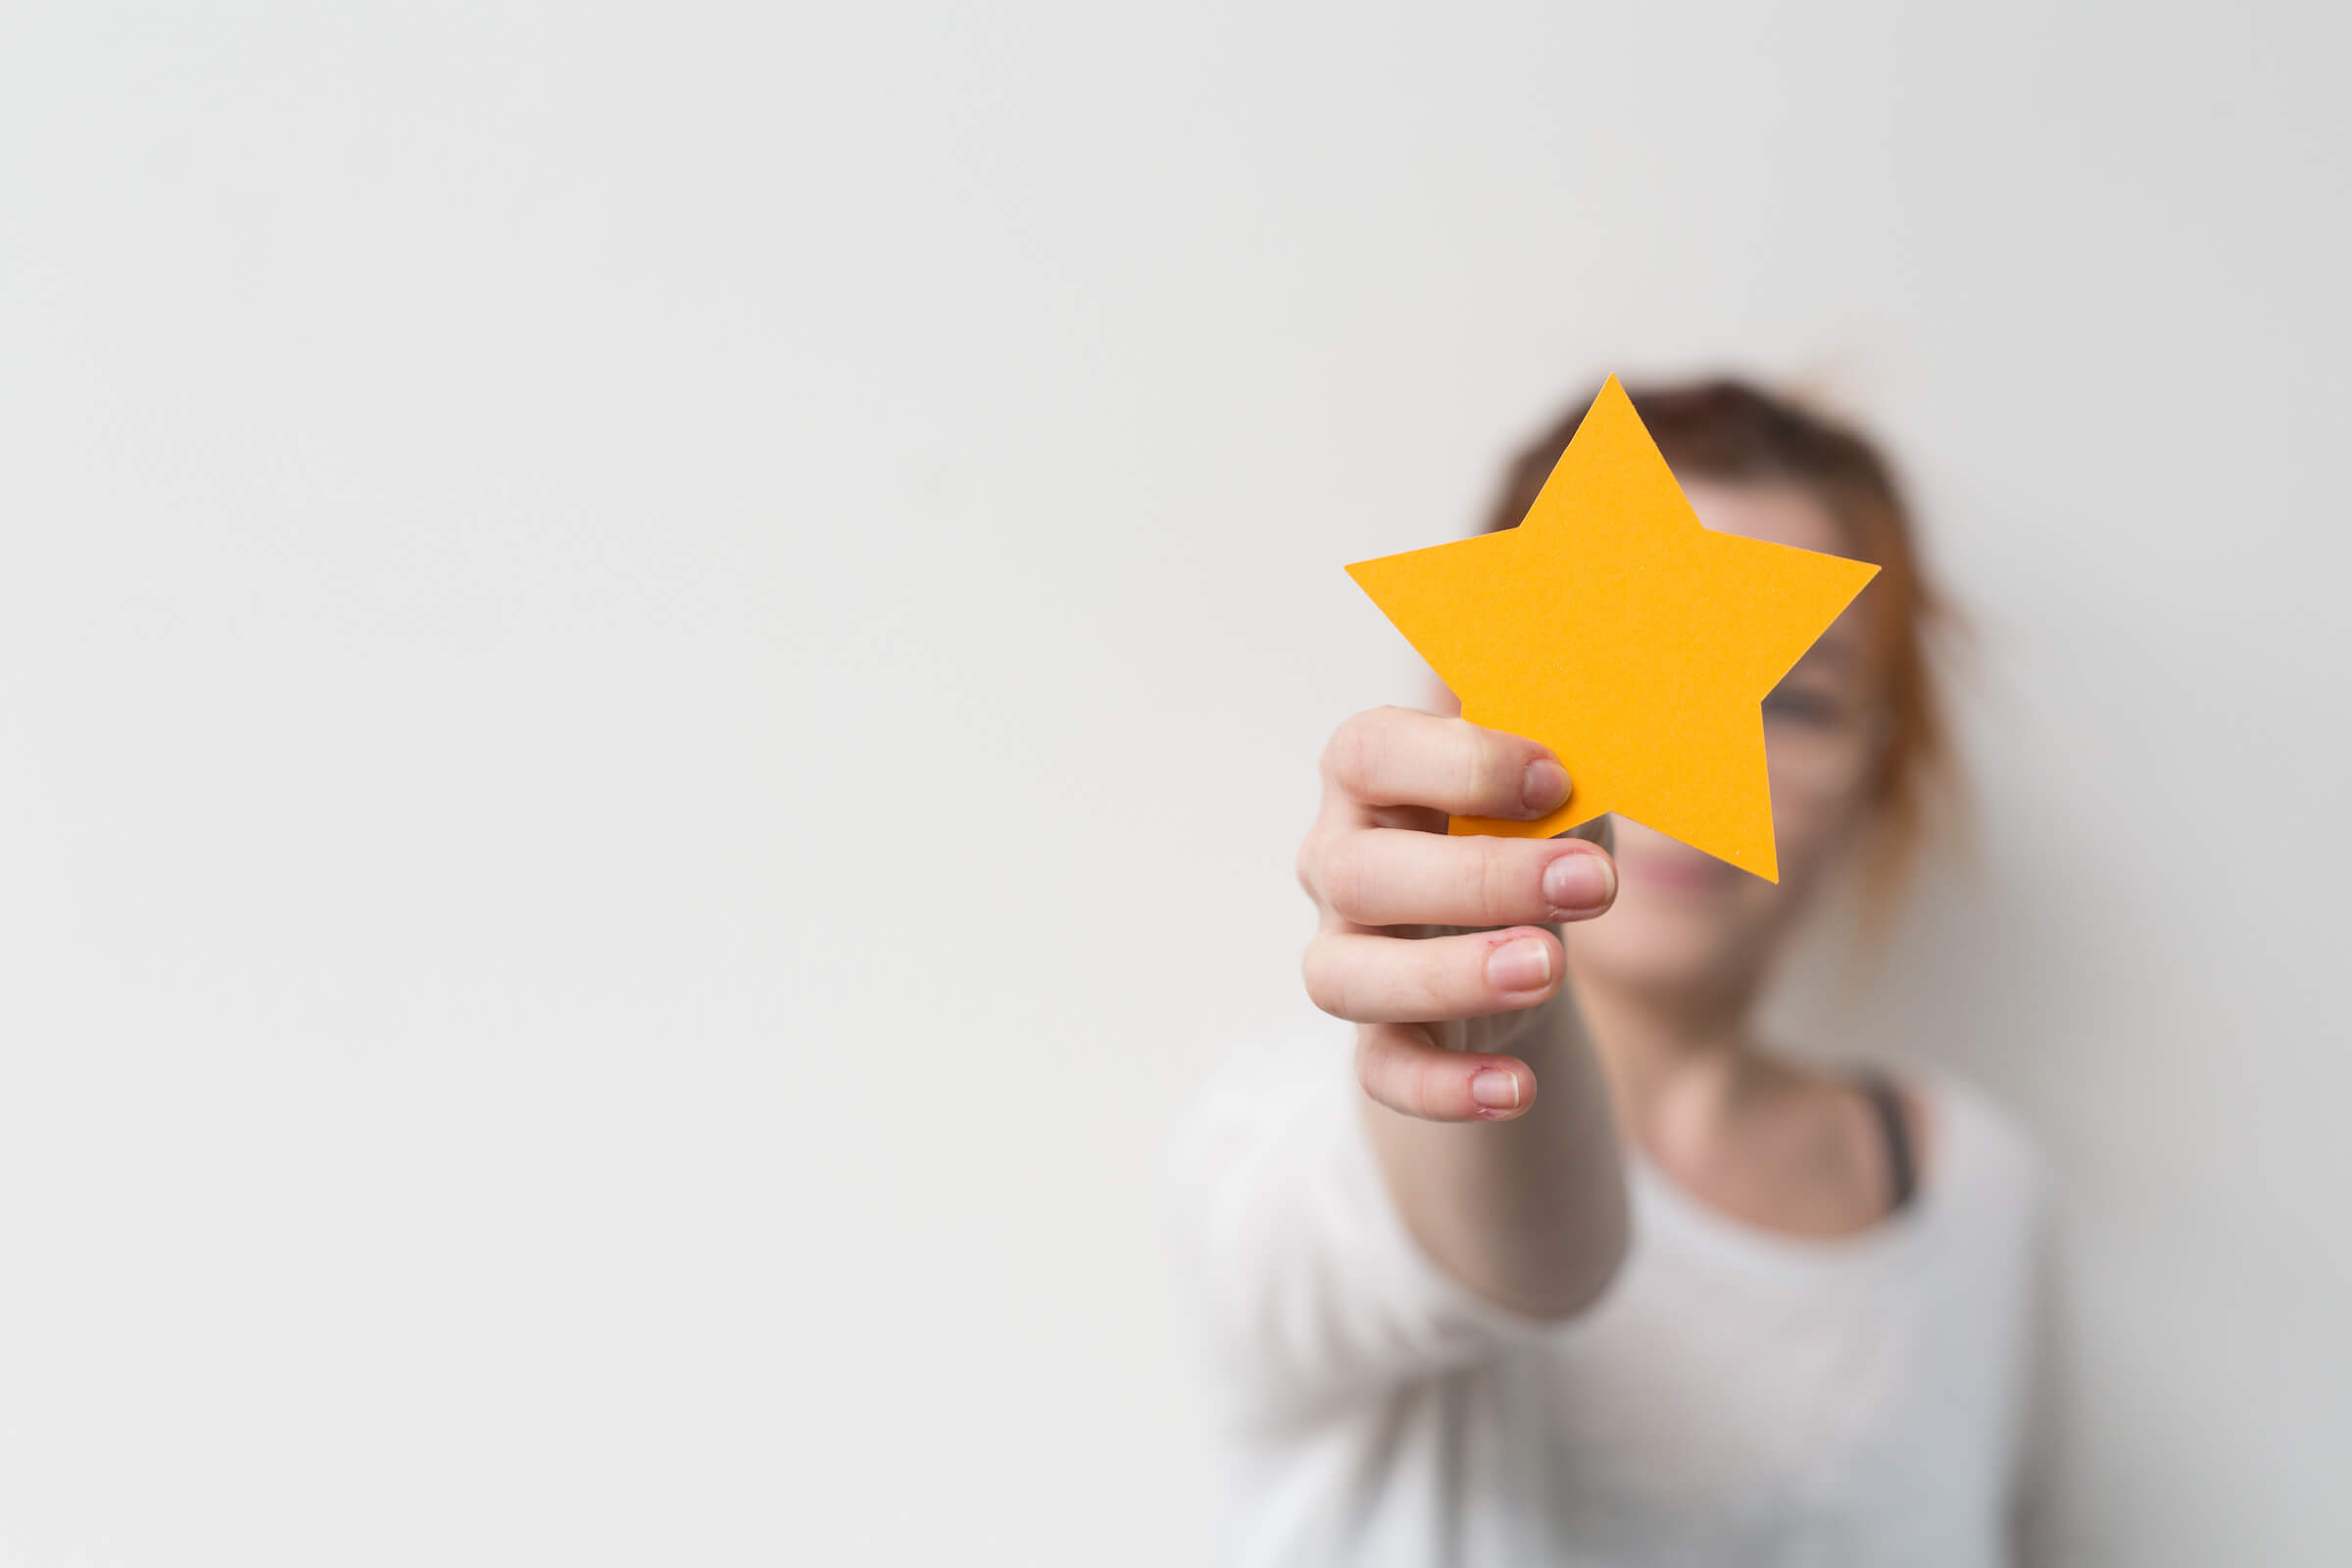 How to use the STAR technique for interviews